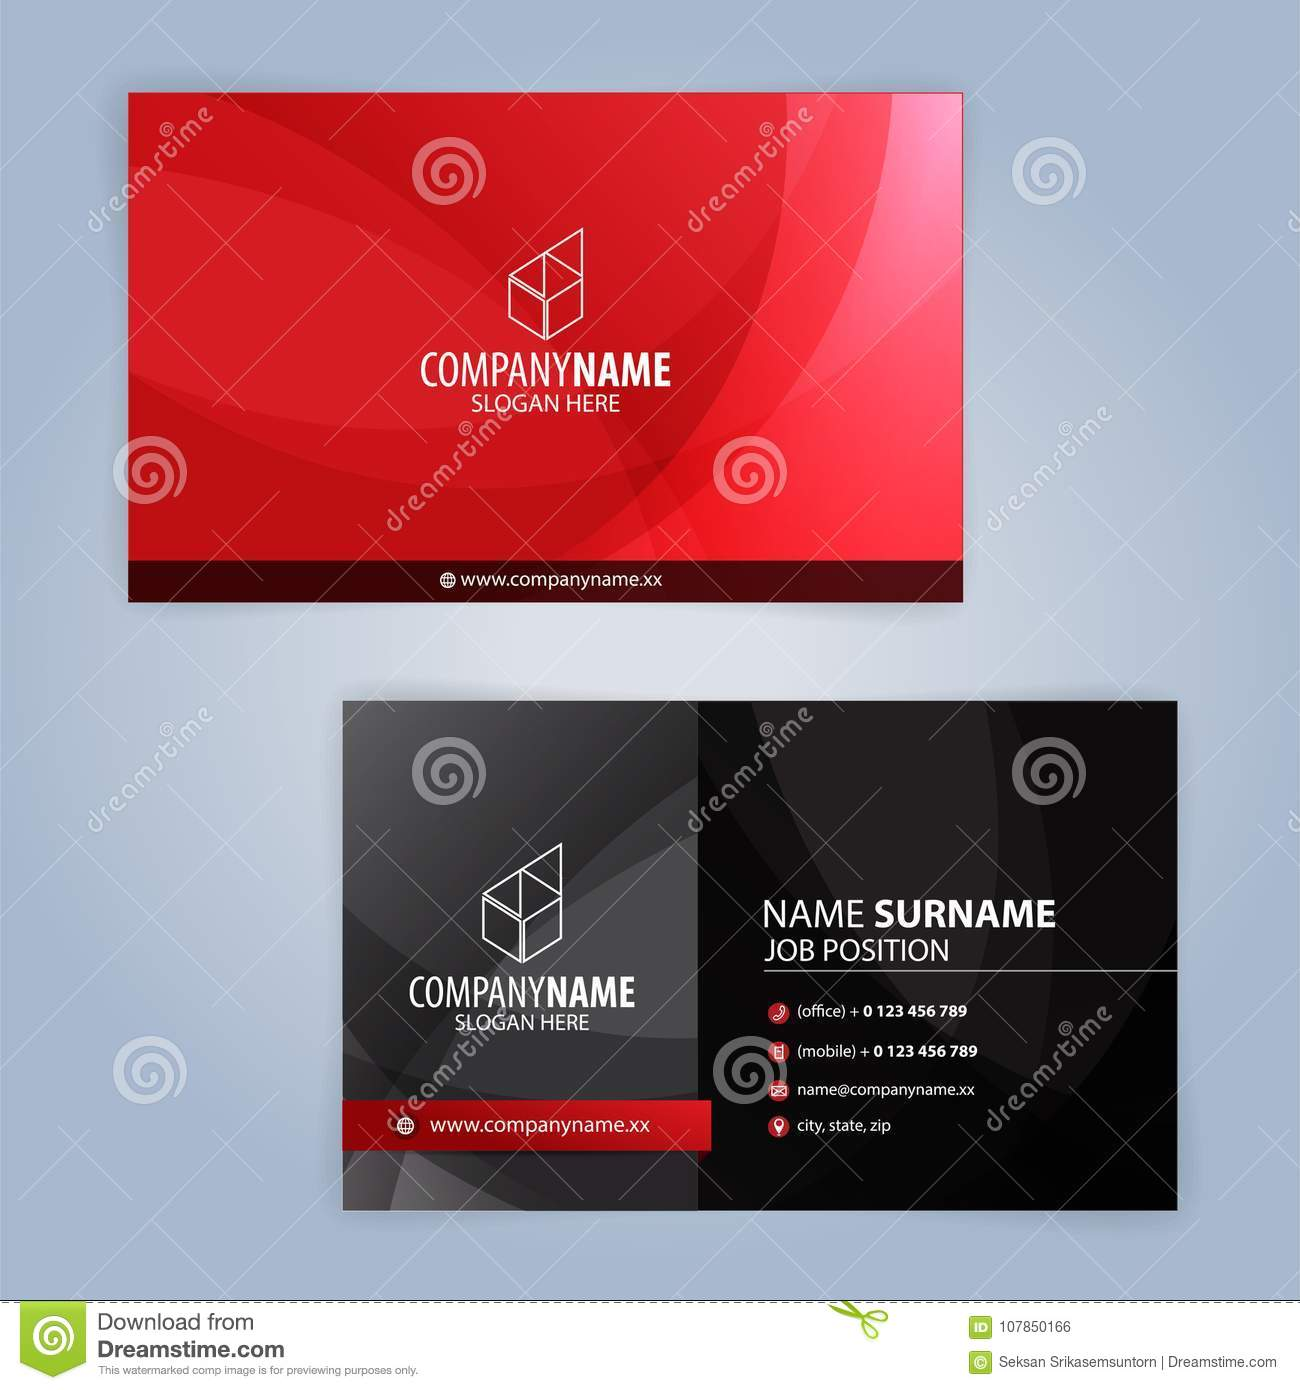 Red and black modern business card template stock vector download red and black modern business card template stock vector illustration of office card cheaphphosting Image collections